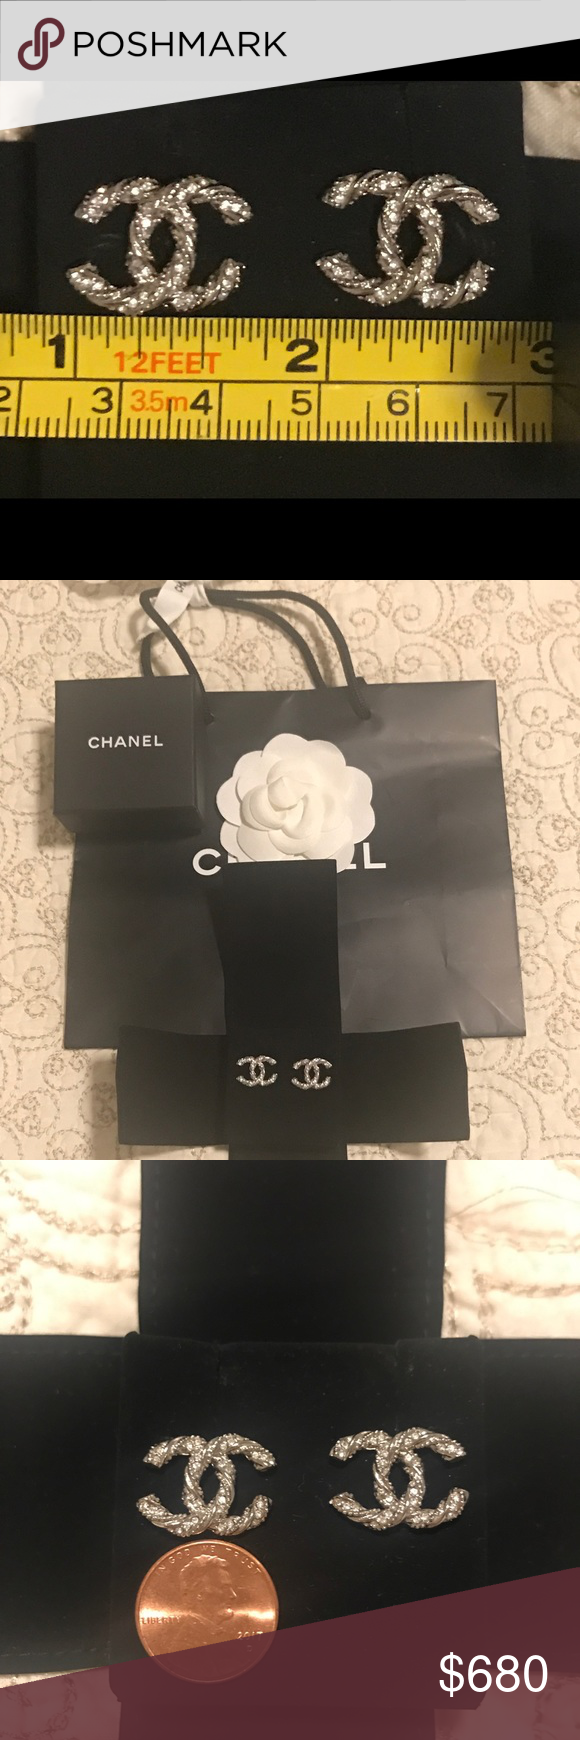 Chanel silver twisted crystal cc stud earrings 100